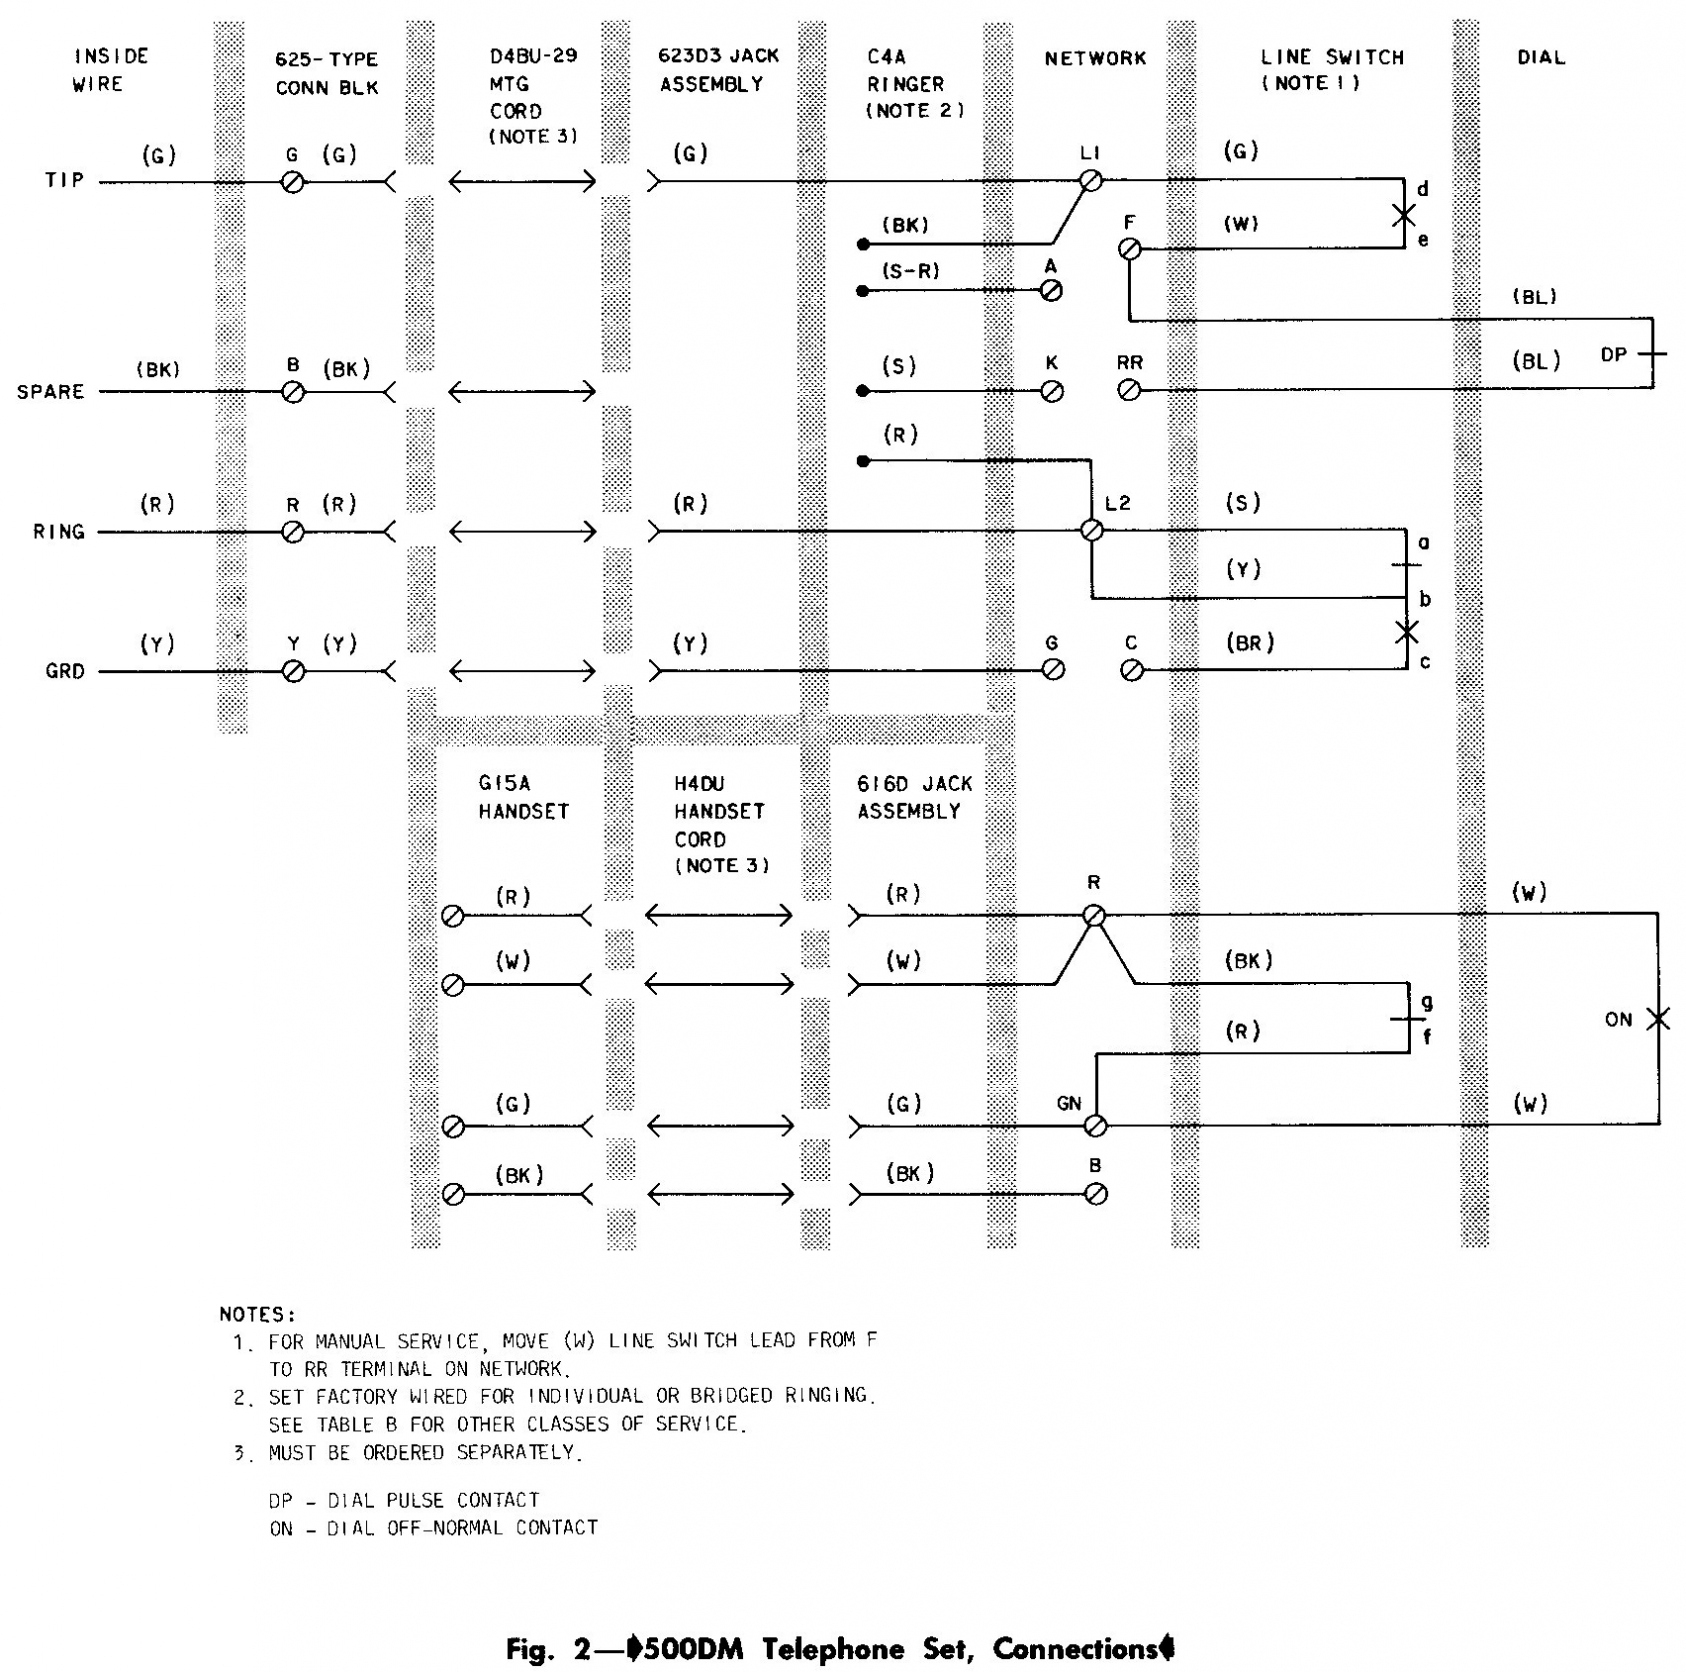 Cat5e Telephone Wiring Diagram - Allove